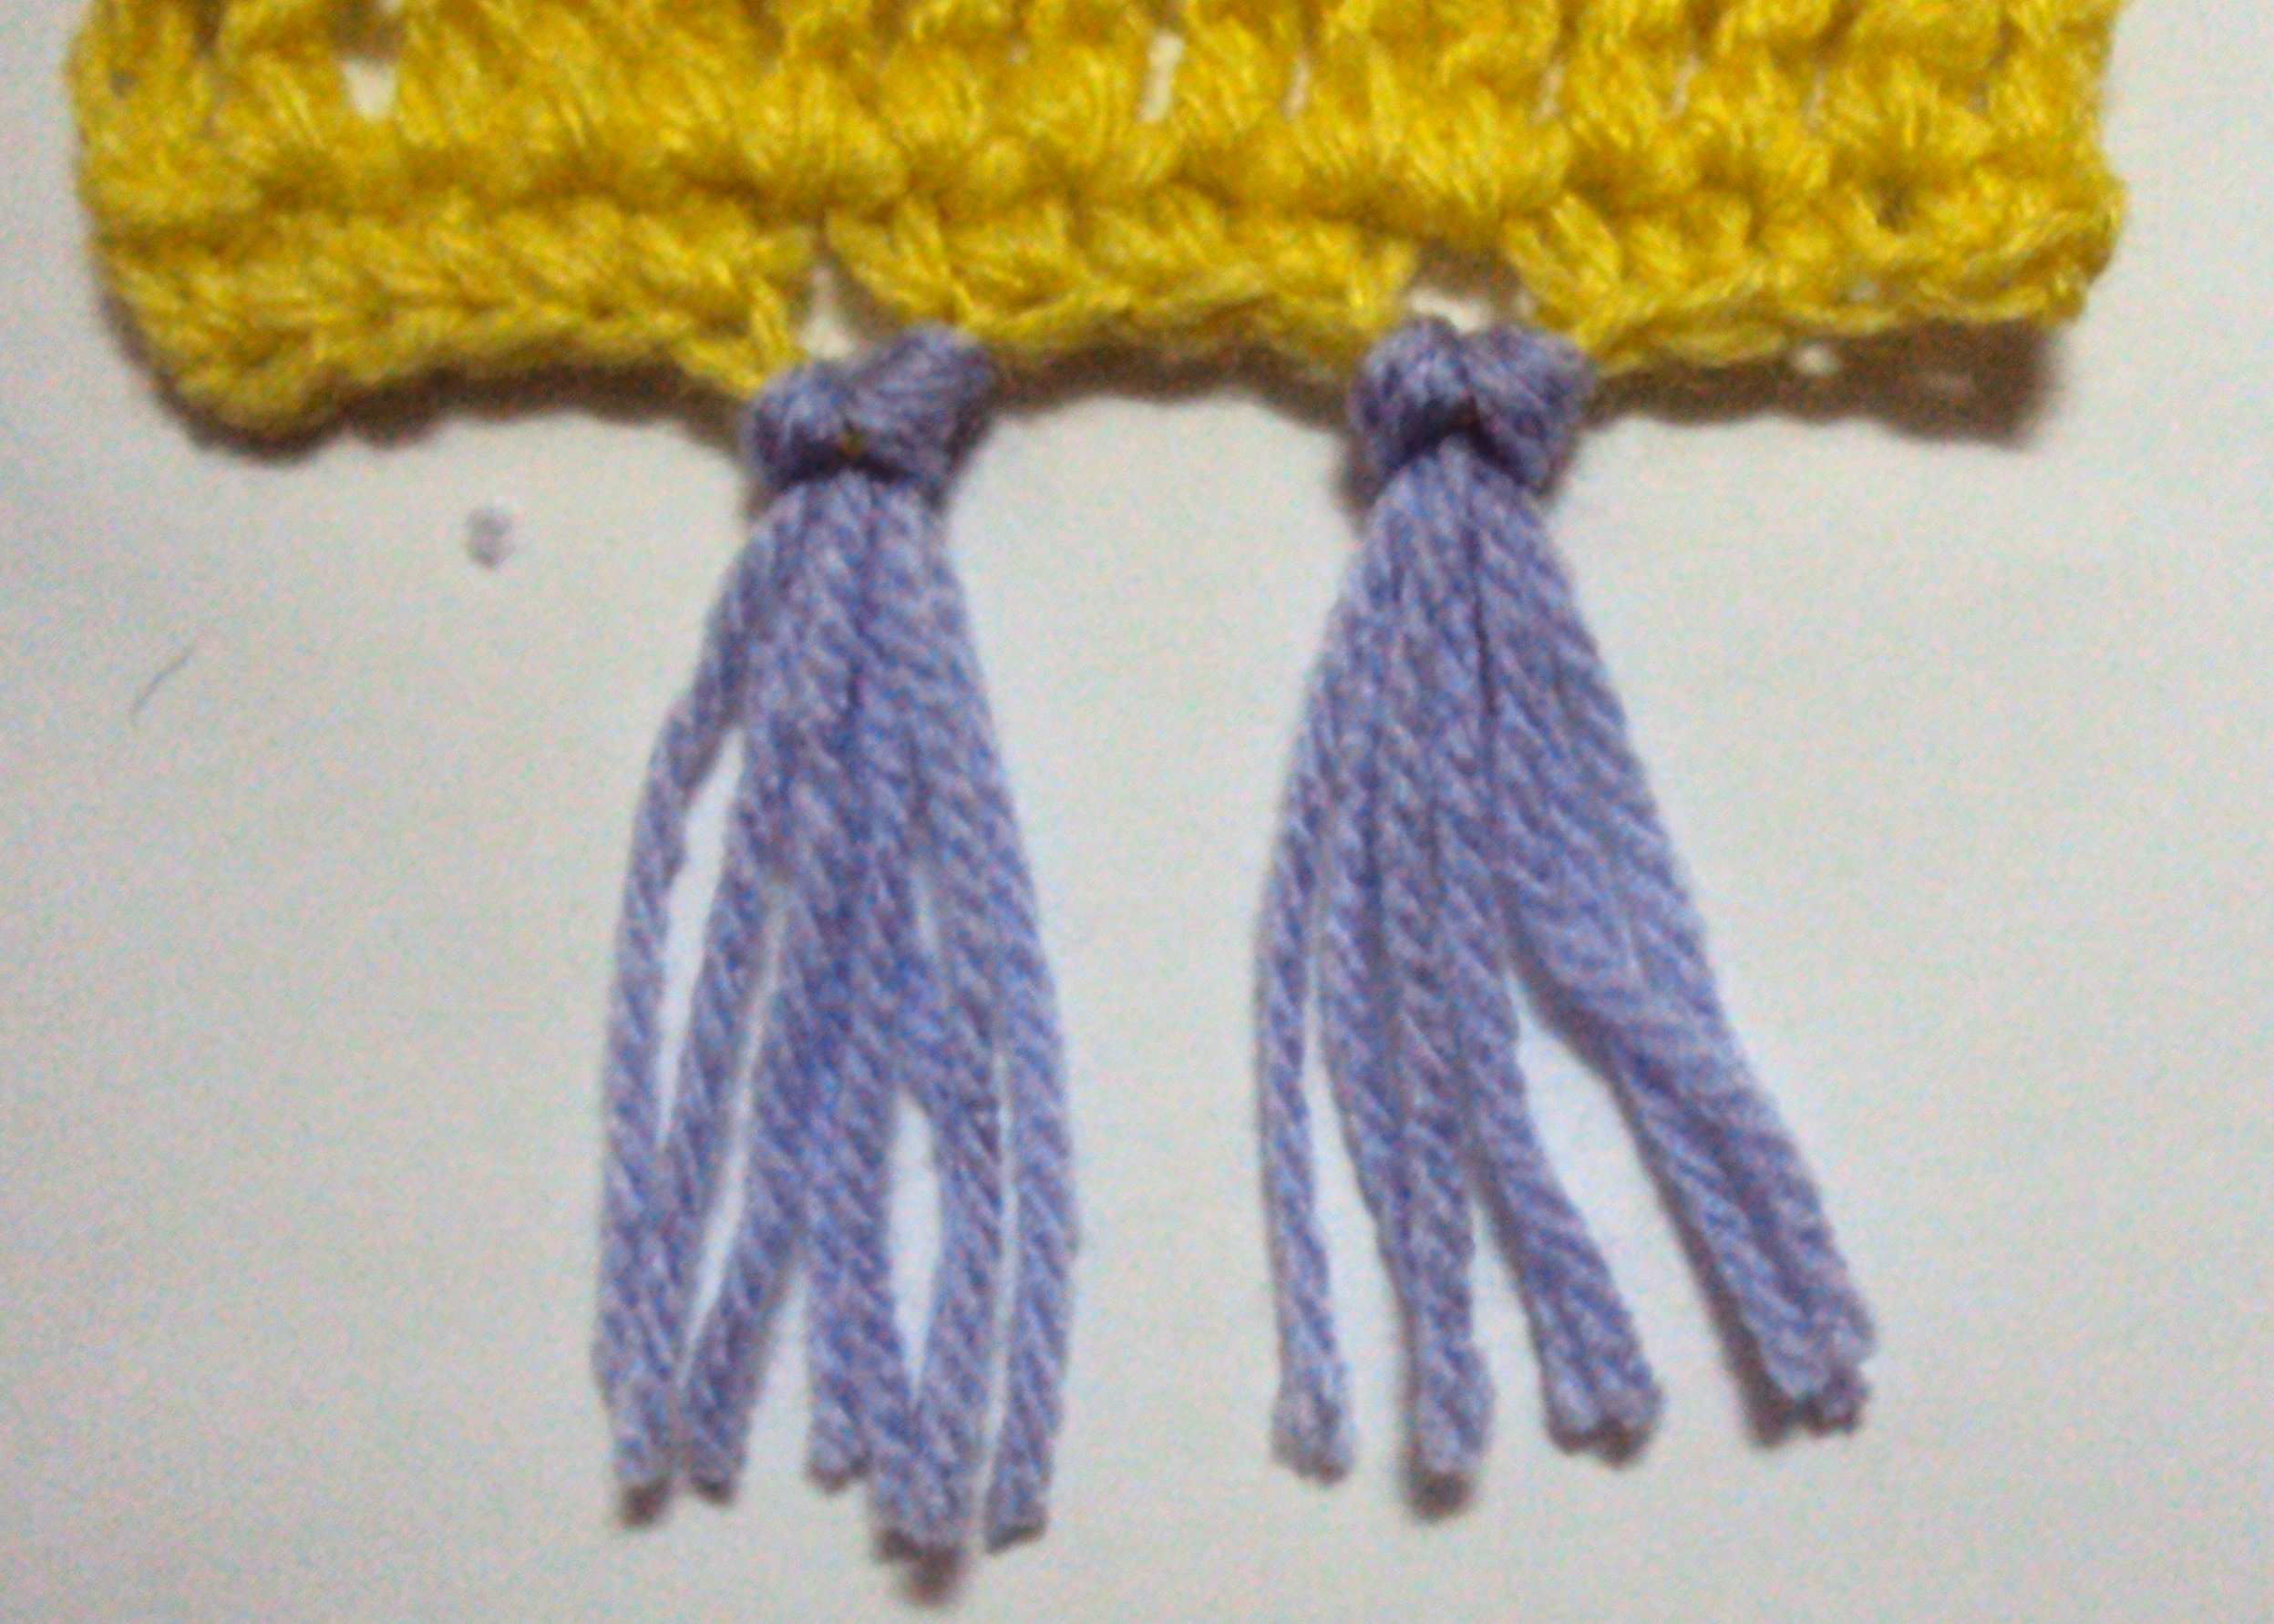 Make Crochet Pattern : ... or Tassels Using a Crochet Hook - Crochet Patterns, Tutorials and News